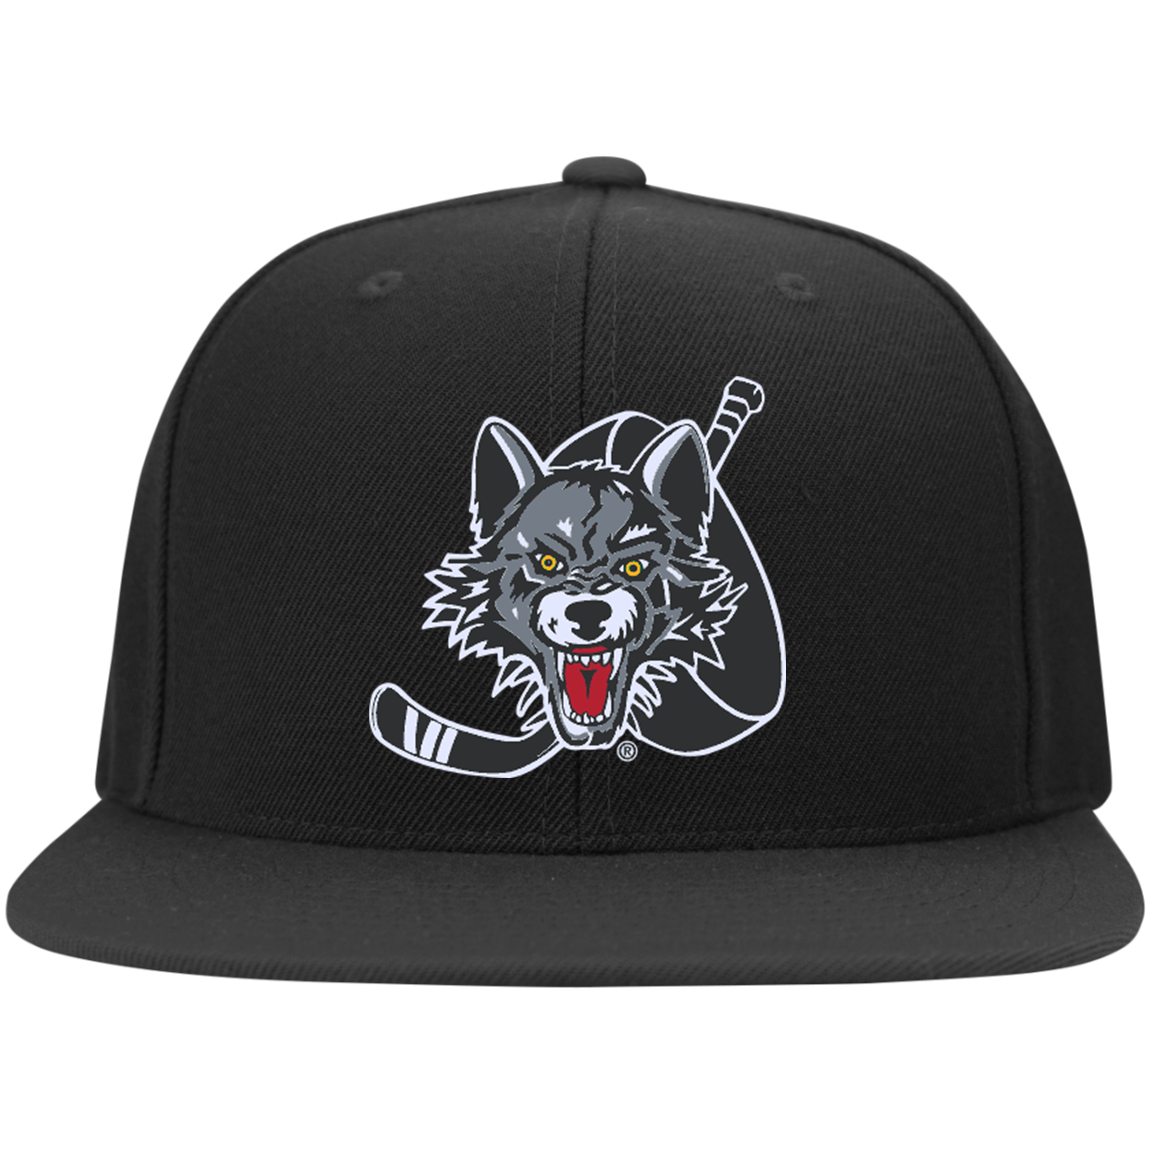 Chicago Wolves Flat Bill High-Profile Snapback Hat – ahlstore.com 4067478bcc9